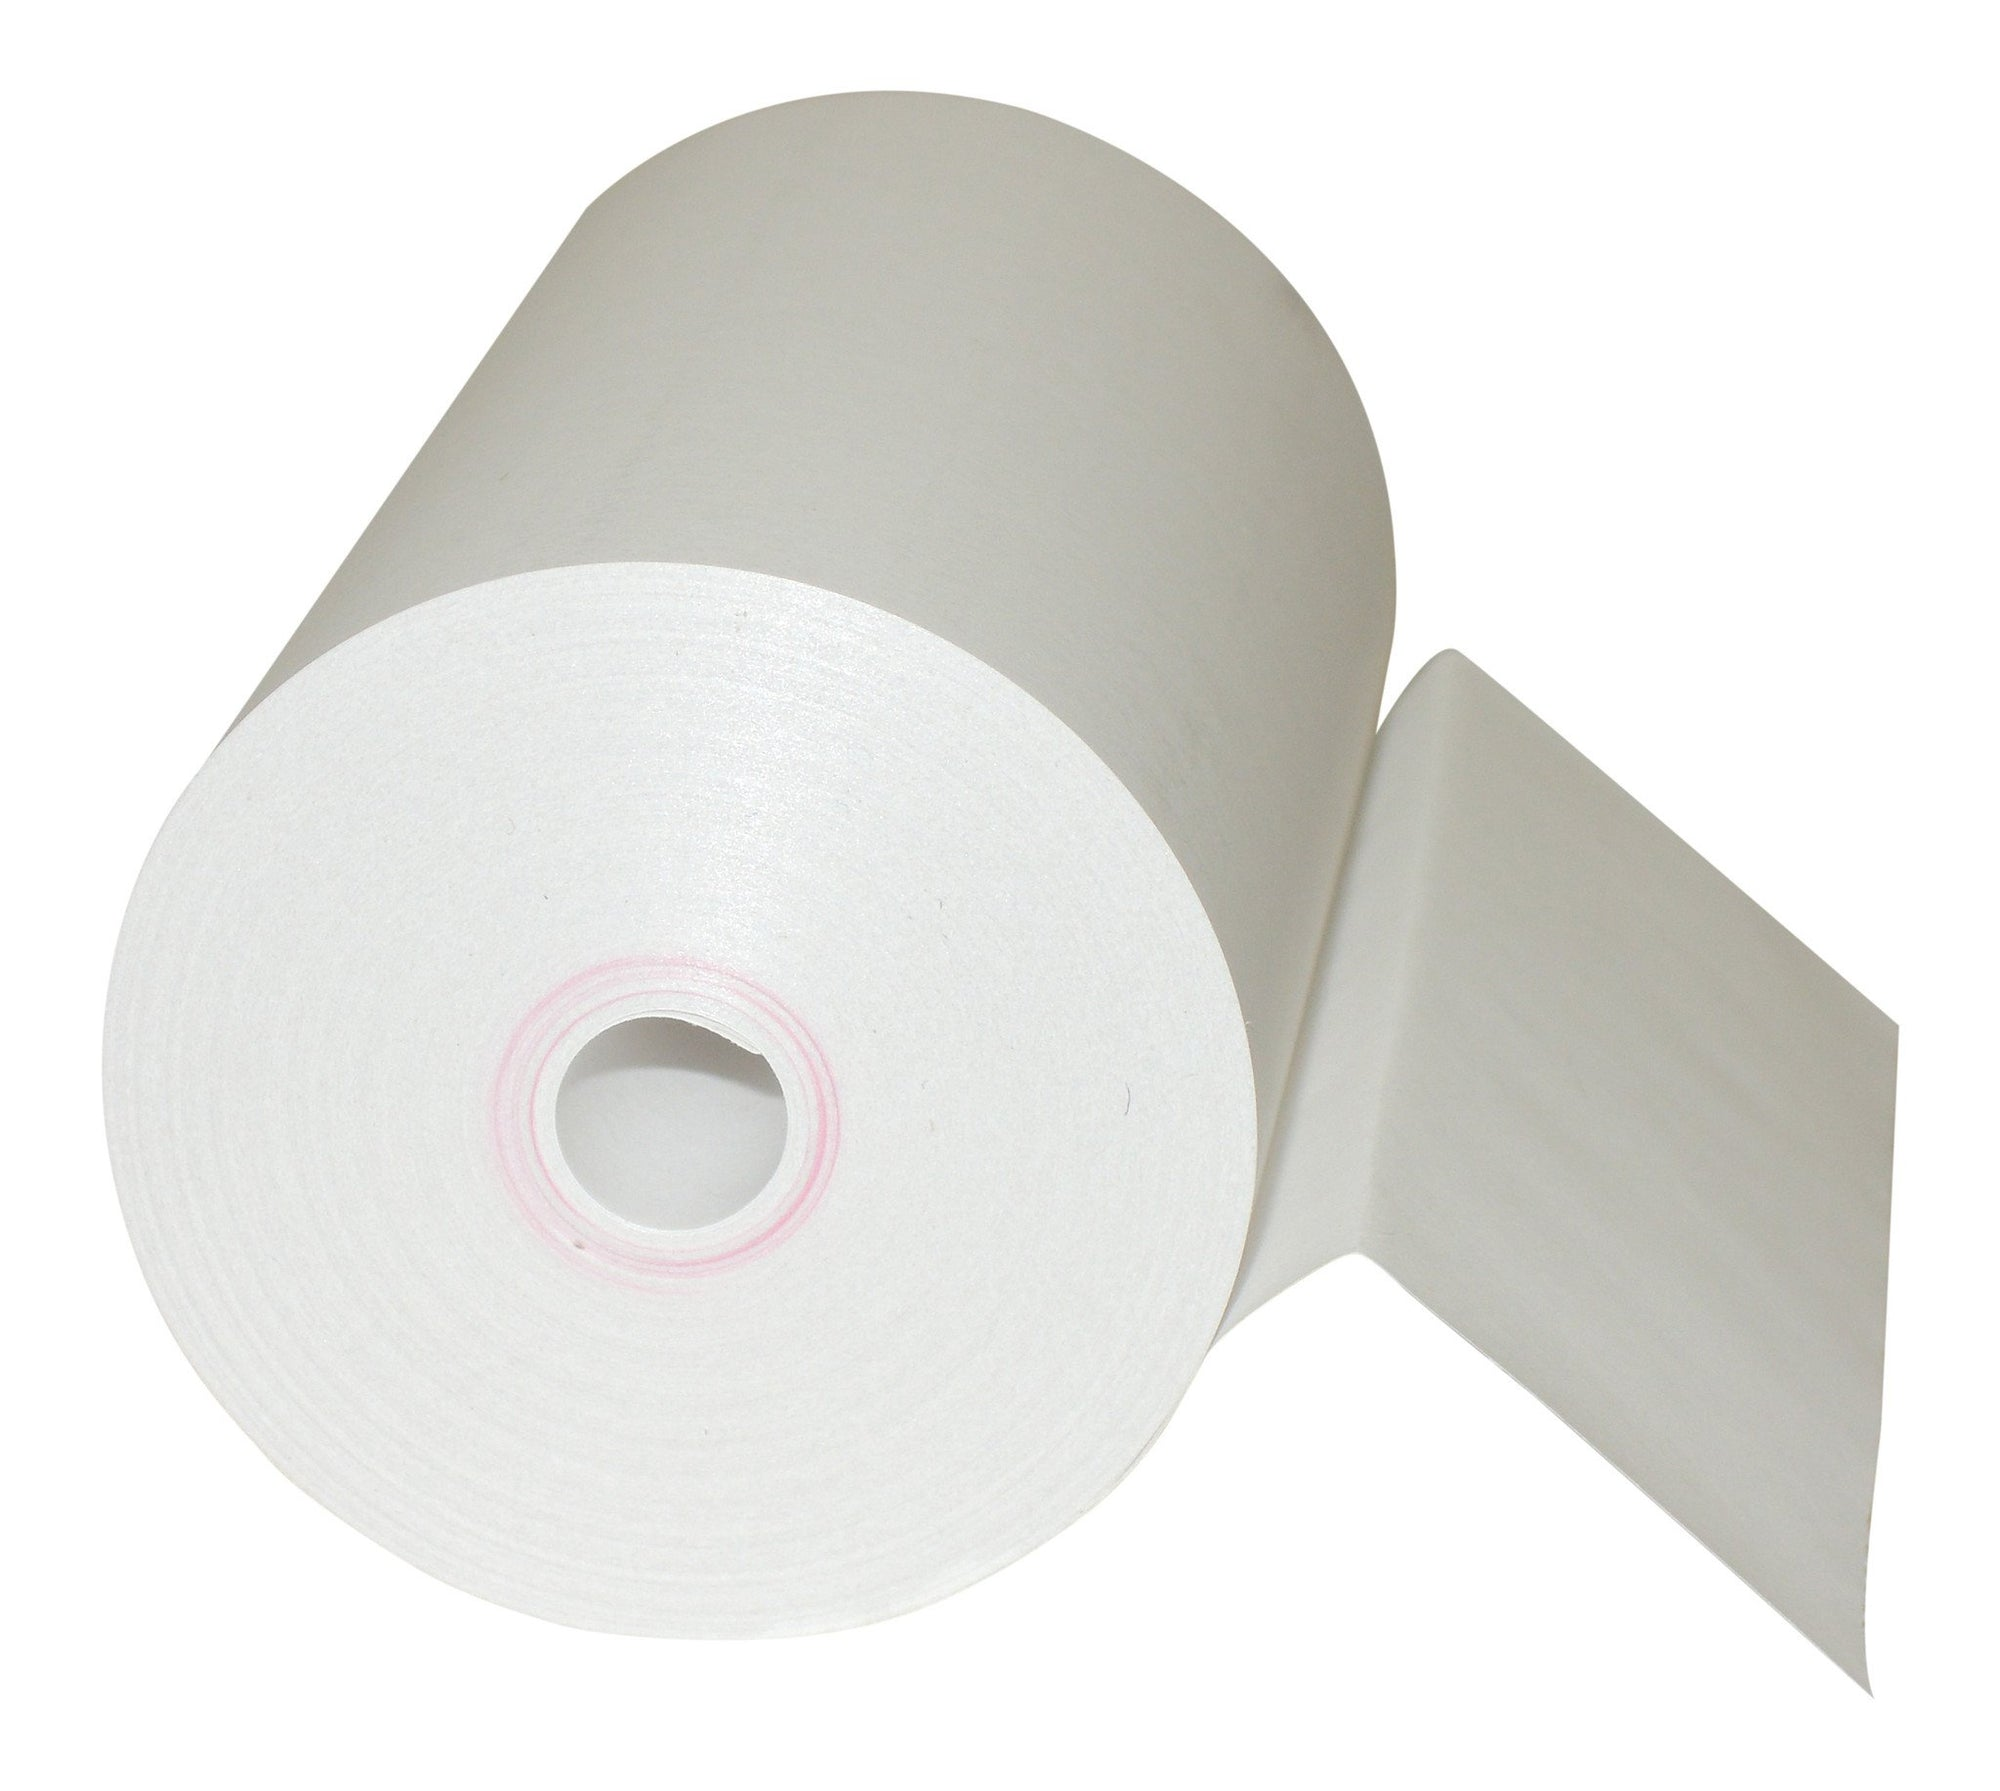 POS1 Thermal Paper 3 1/8 x 125 ft x 50mm CORELESS BPA Free 40 rolls